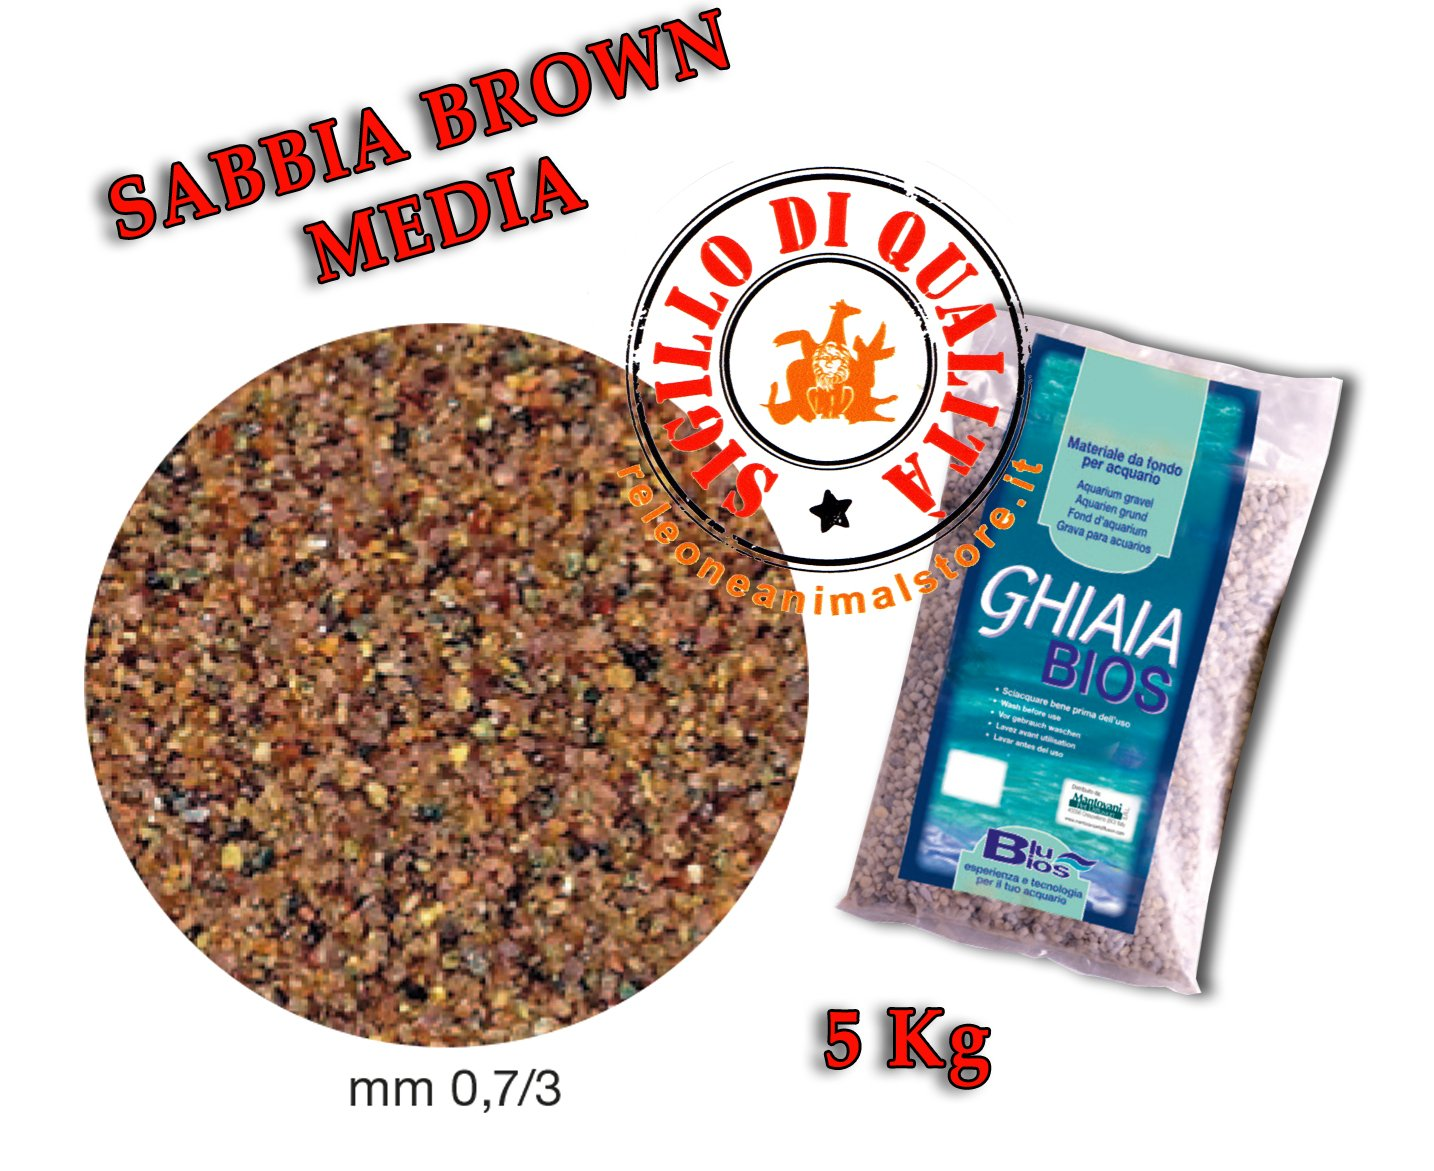 Mantovani Pet Diffusion Gravilla Bios Arena Brown Media - 5 kg: Amazon.es: Productos para mascotas